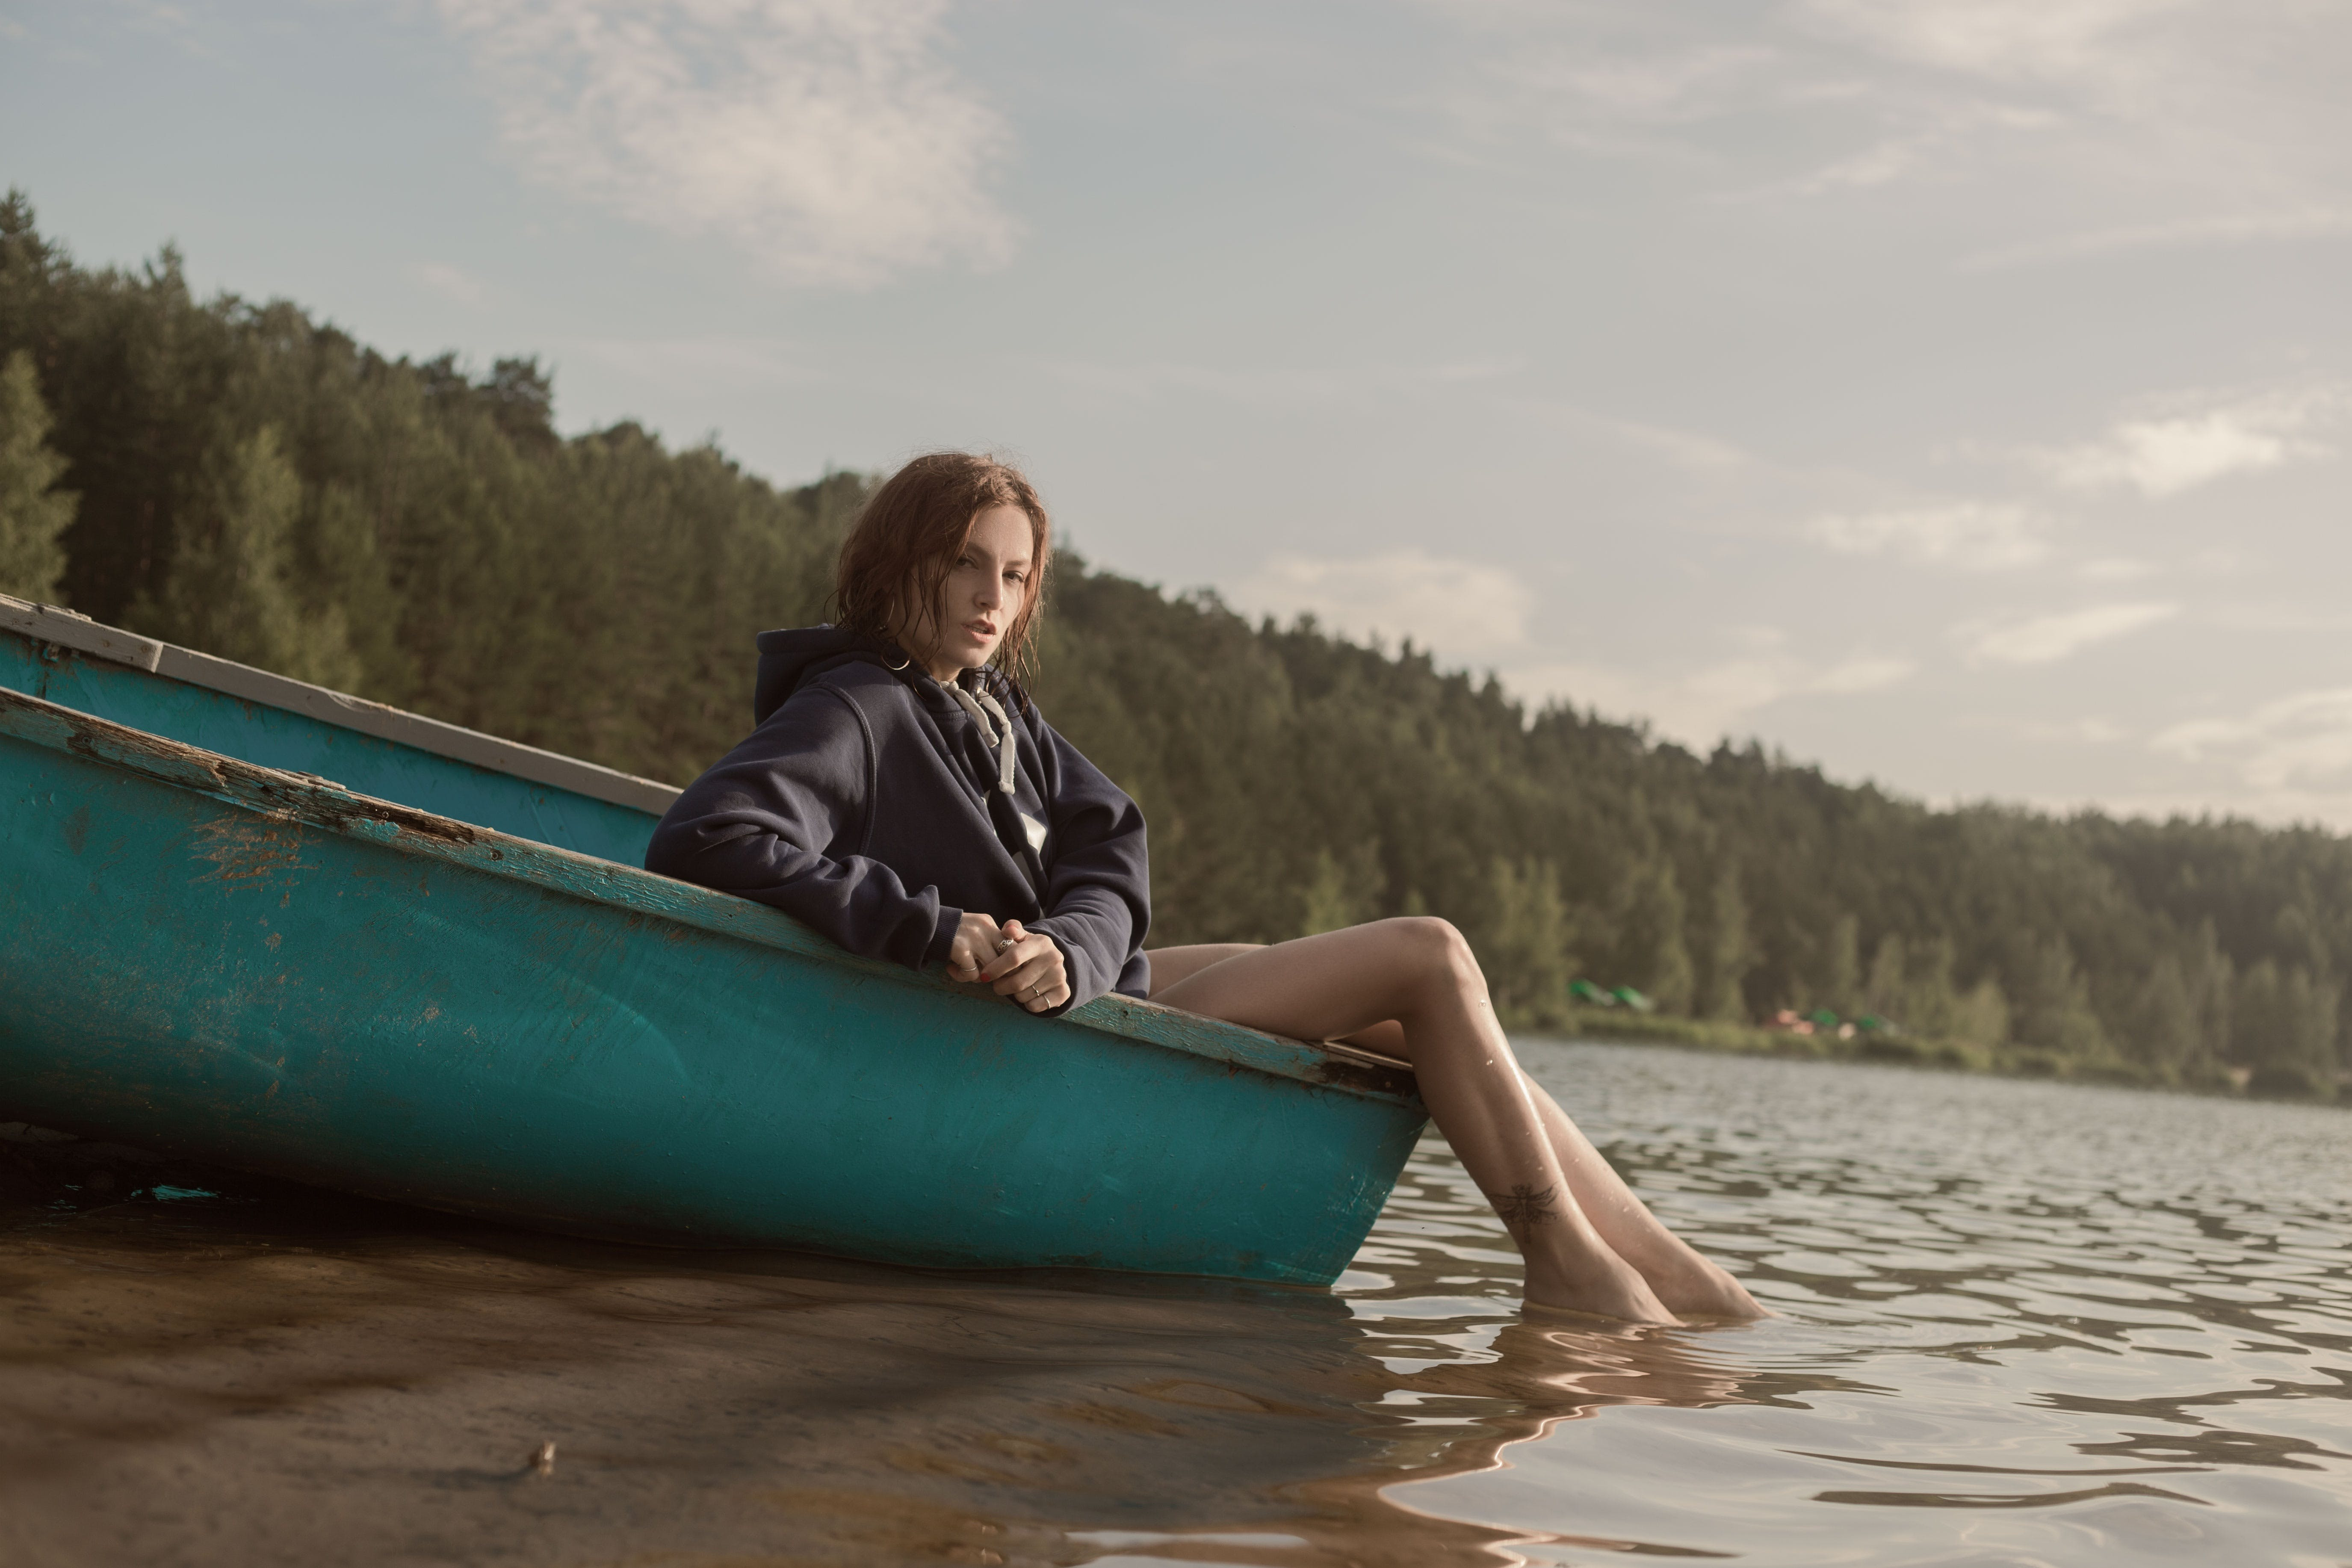 Woman in Black Hoodie Sitting on Blue Kayak